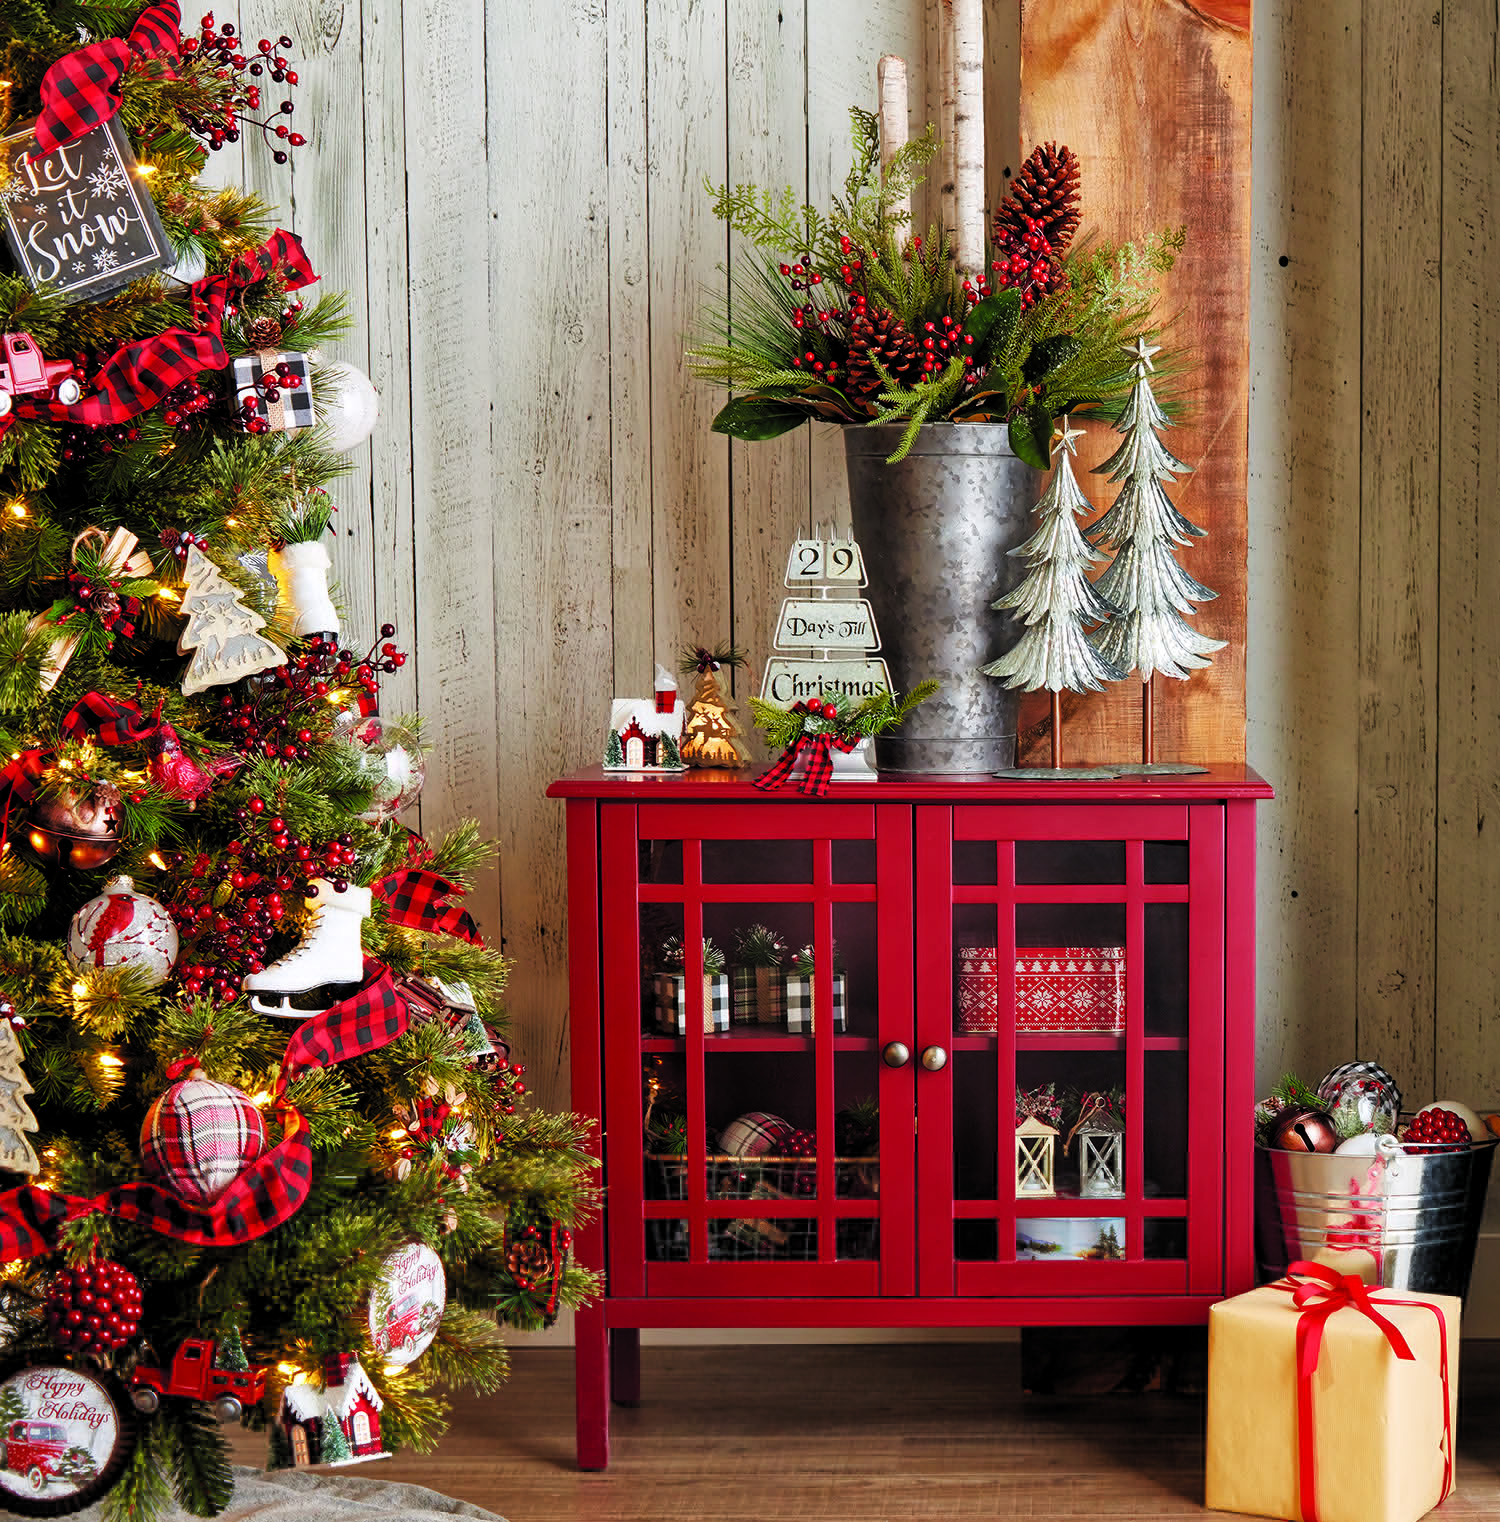 It's never too early for holiday inspo! Our Christmas